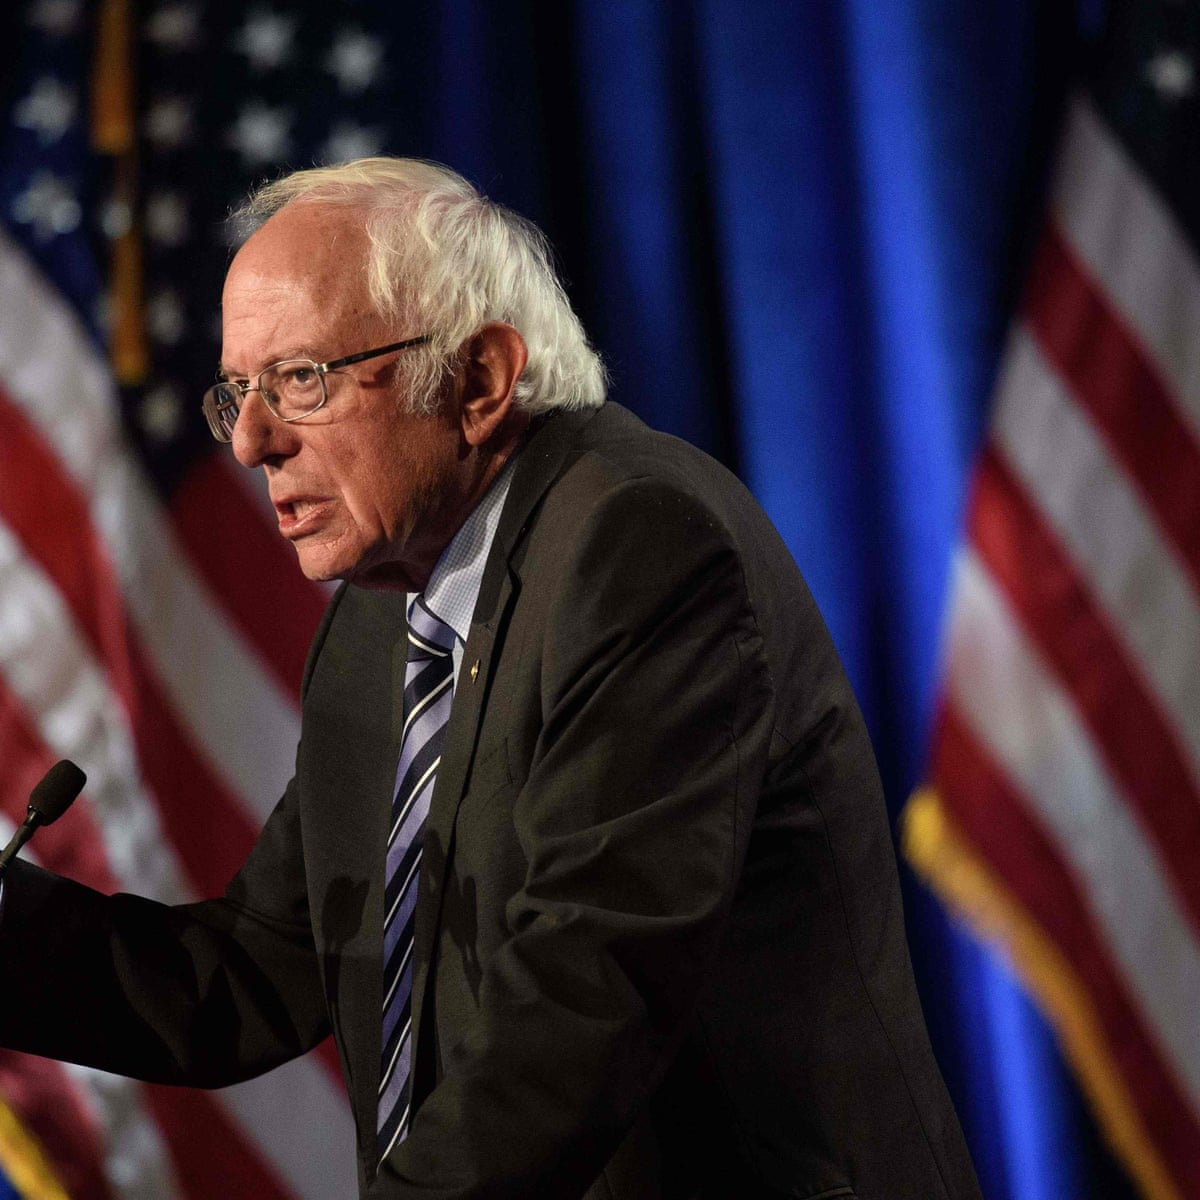 Sanders Issues Stark Warning On Trump And Calls For Election Commission Bernie Sanders The Guardian